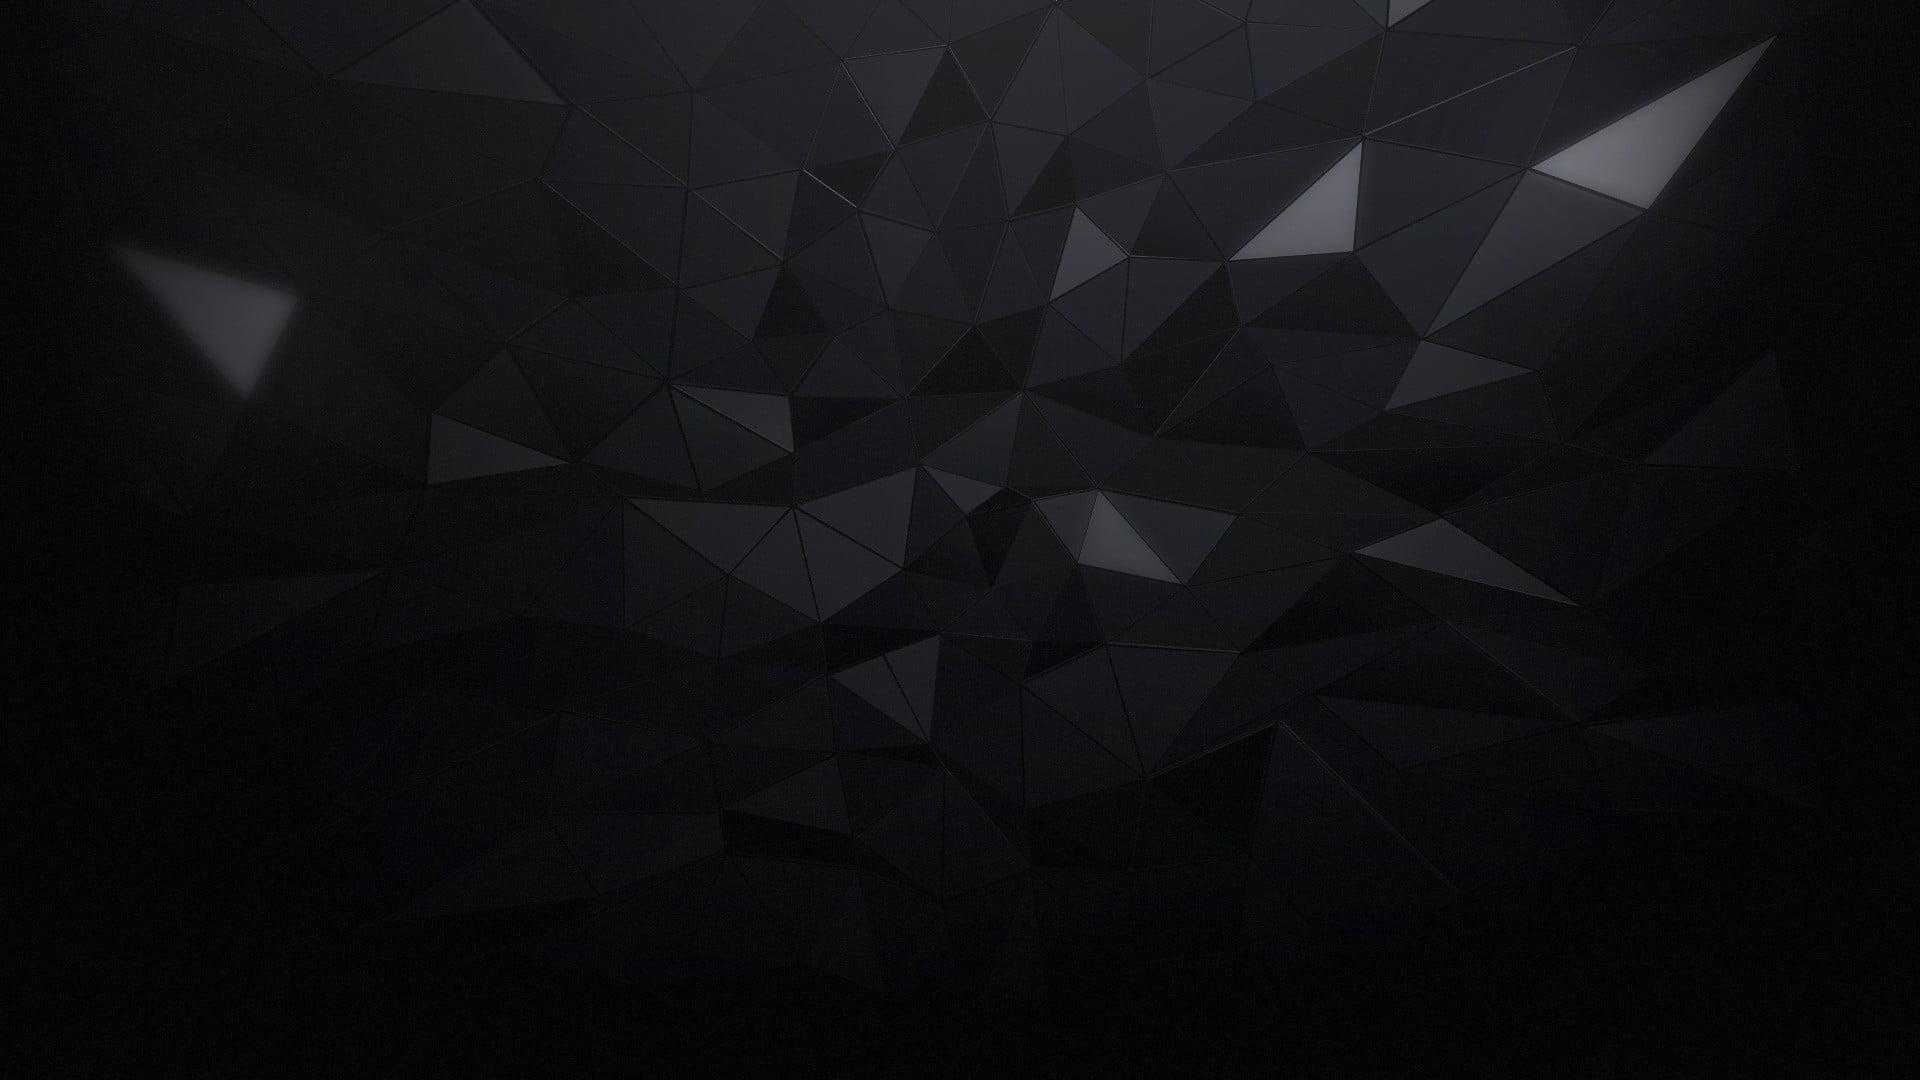 Minimalism, triangle, black, abstract HD wallpapers